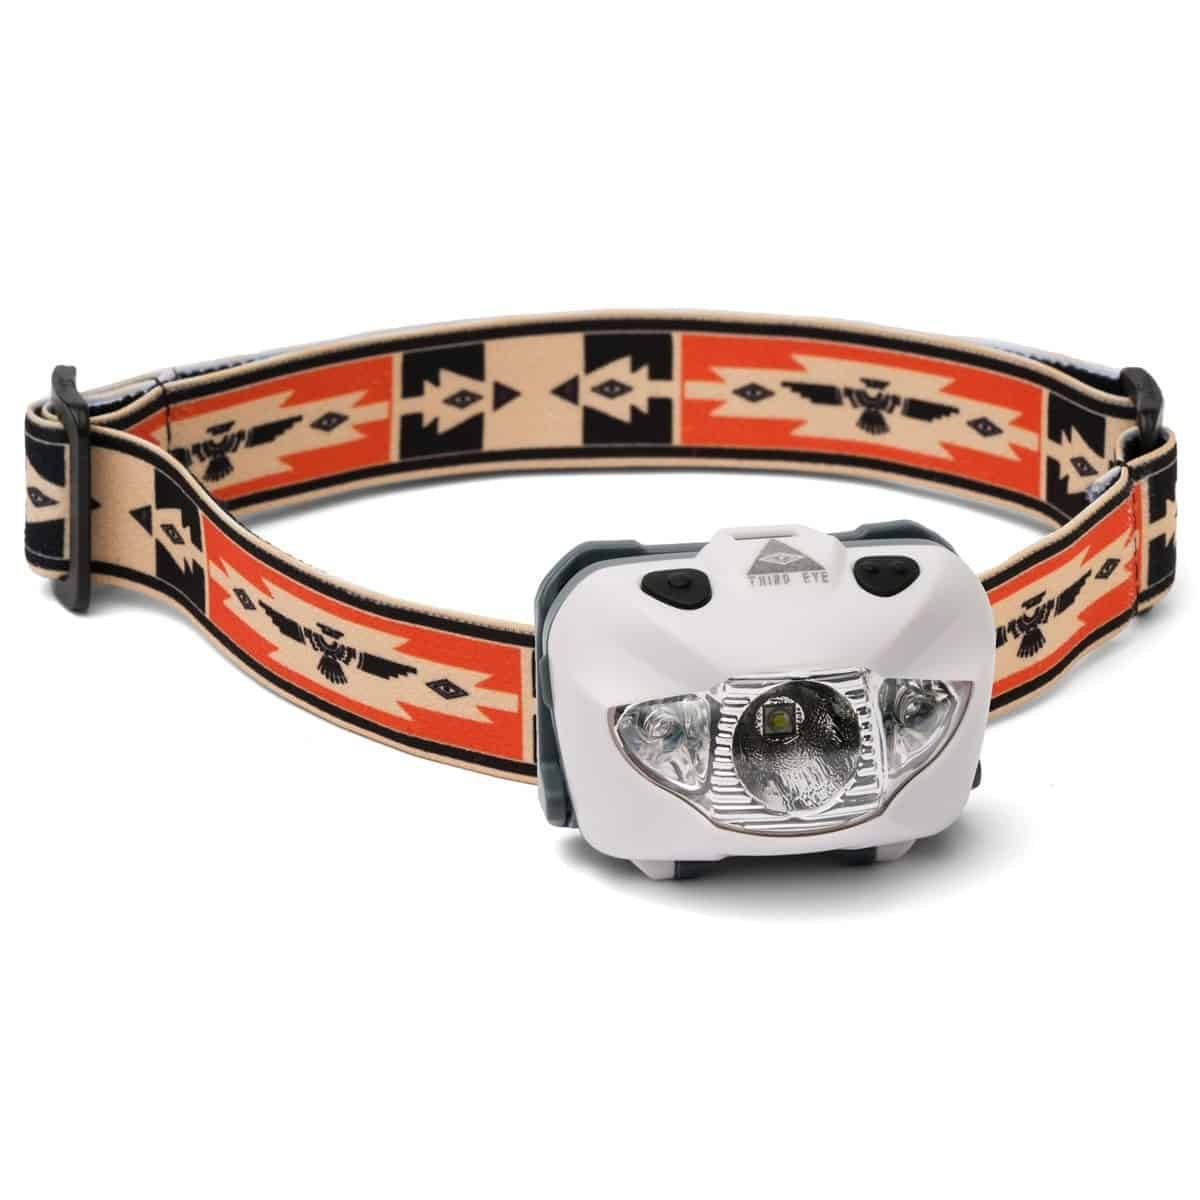 Third Eye Headlamps TE14 - Hvid - Thunderbird